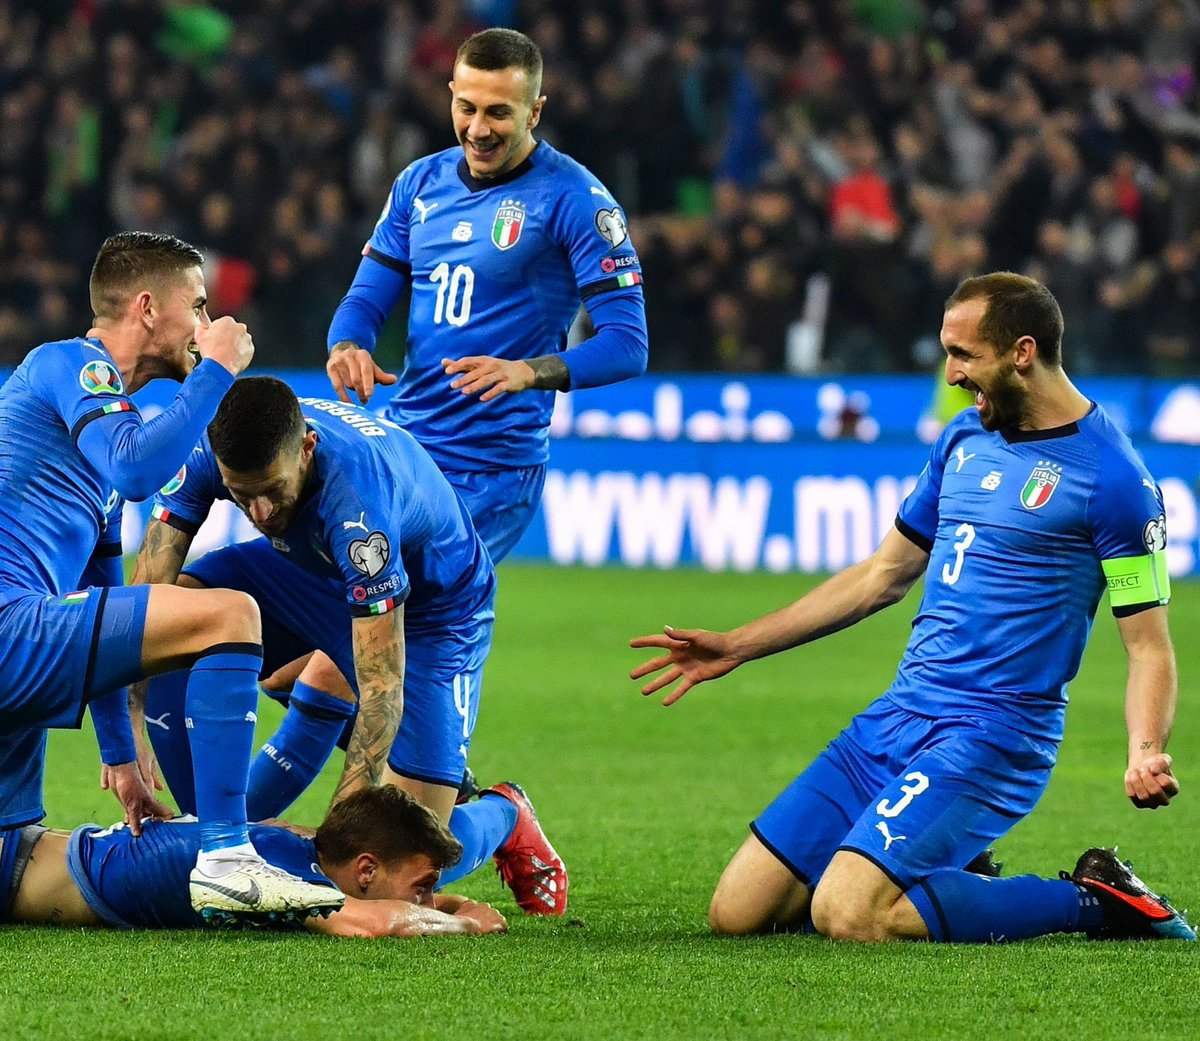 Giorgio Chiellini's photo on #ItaliaFinlandia